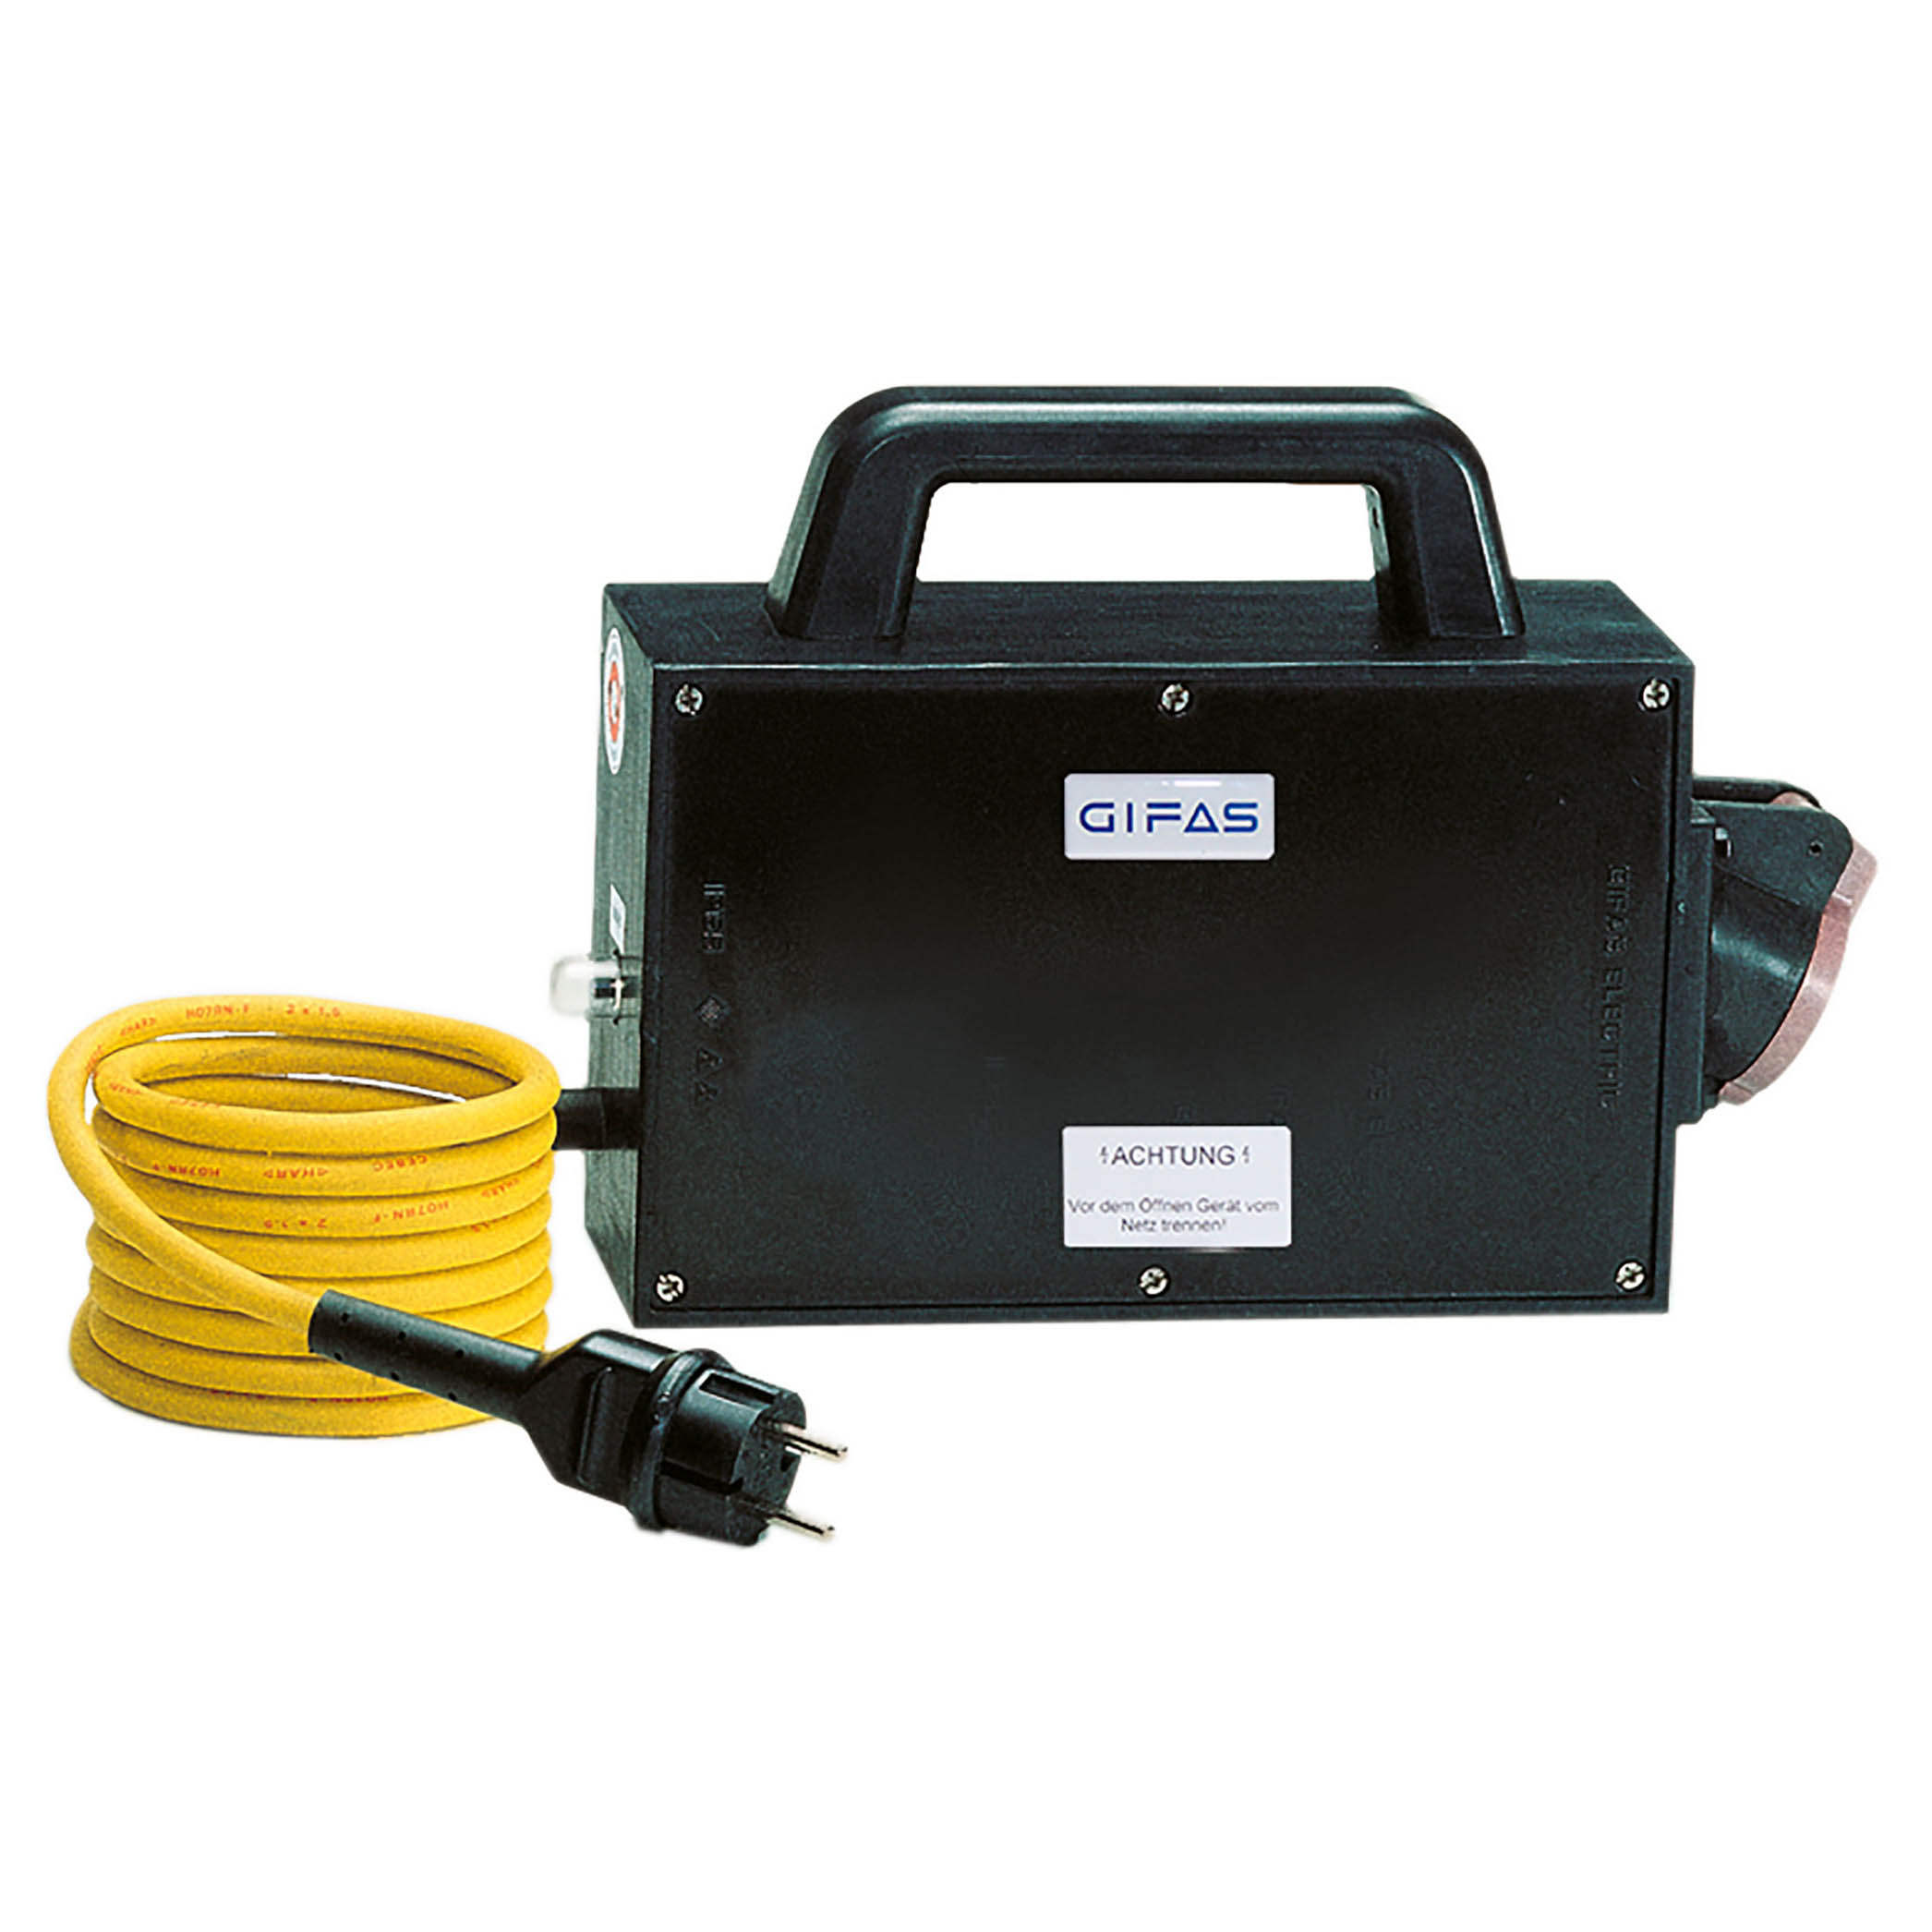 GIFAS Solid Rubber Mobile Safety Transformer Type 2516 - 301487, 208628